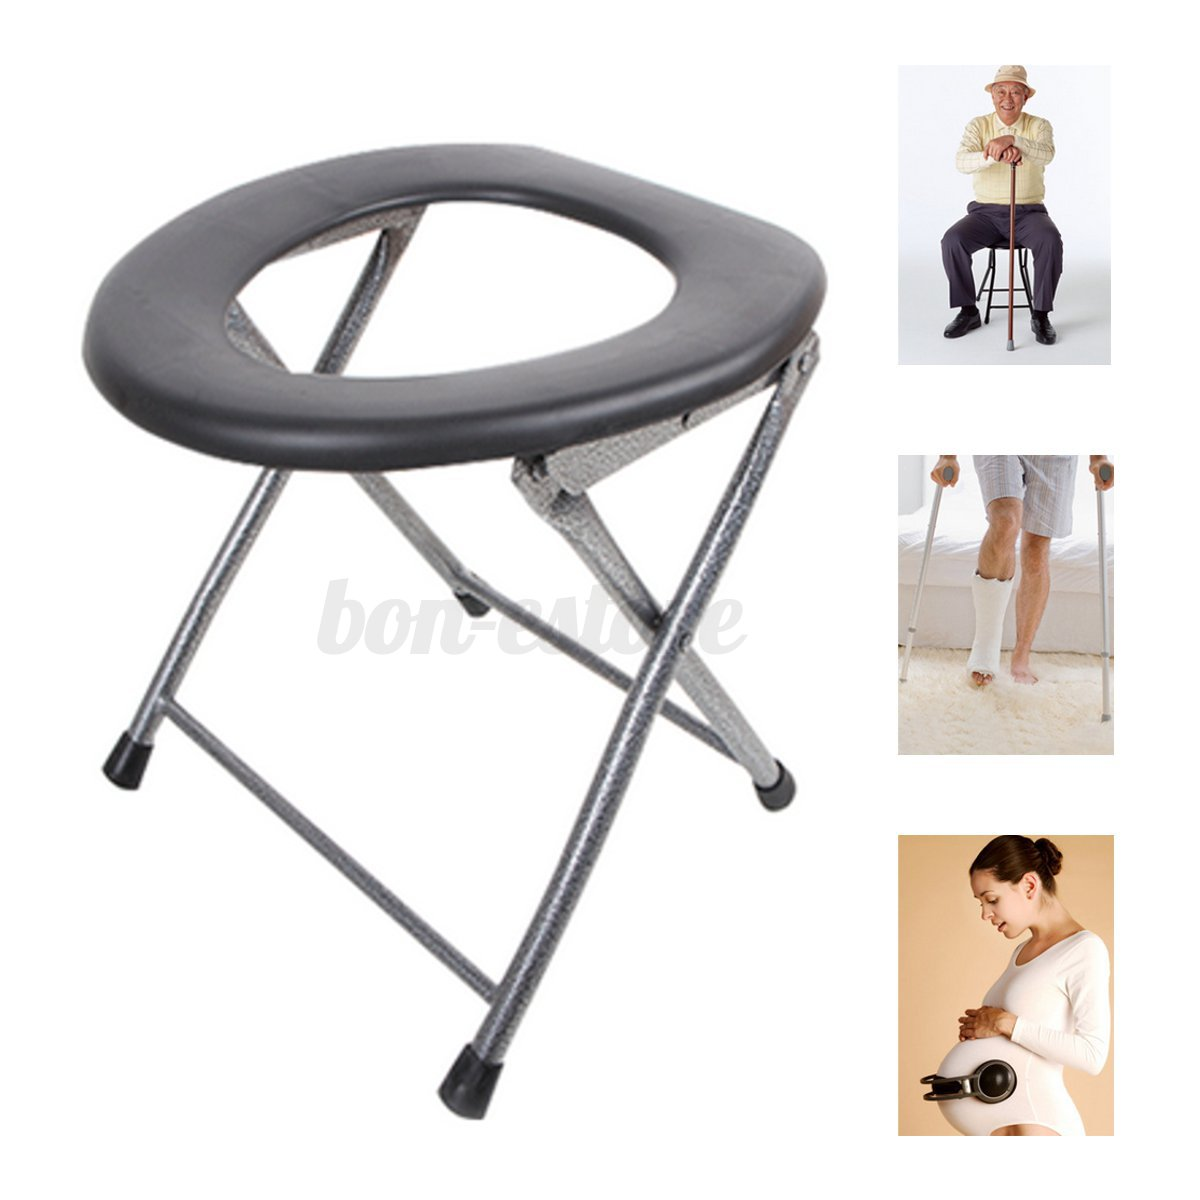 folding chair nepal wedding covers average cost portable toilet travel camping festival park